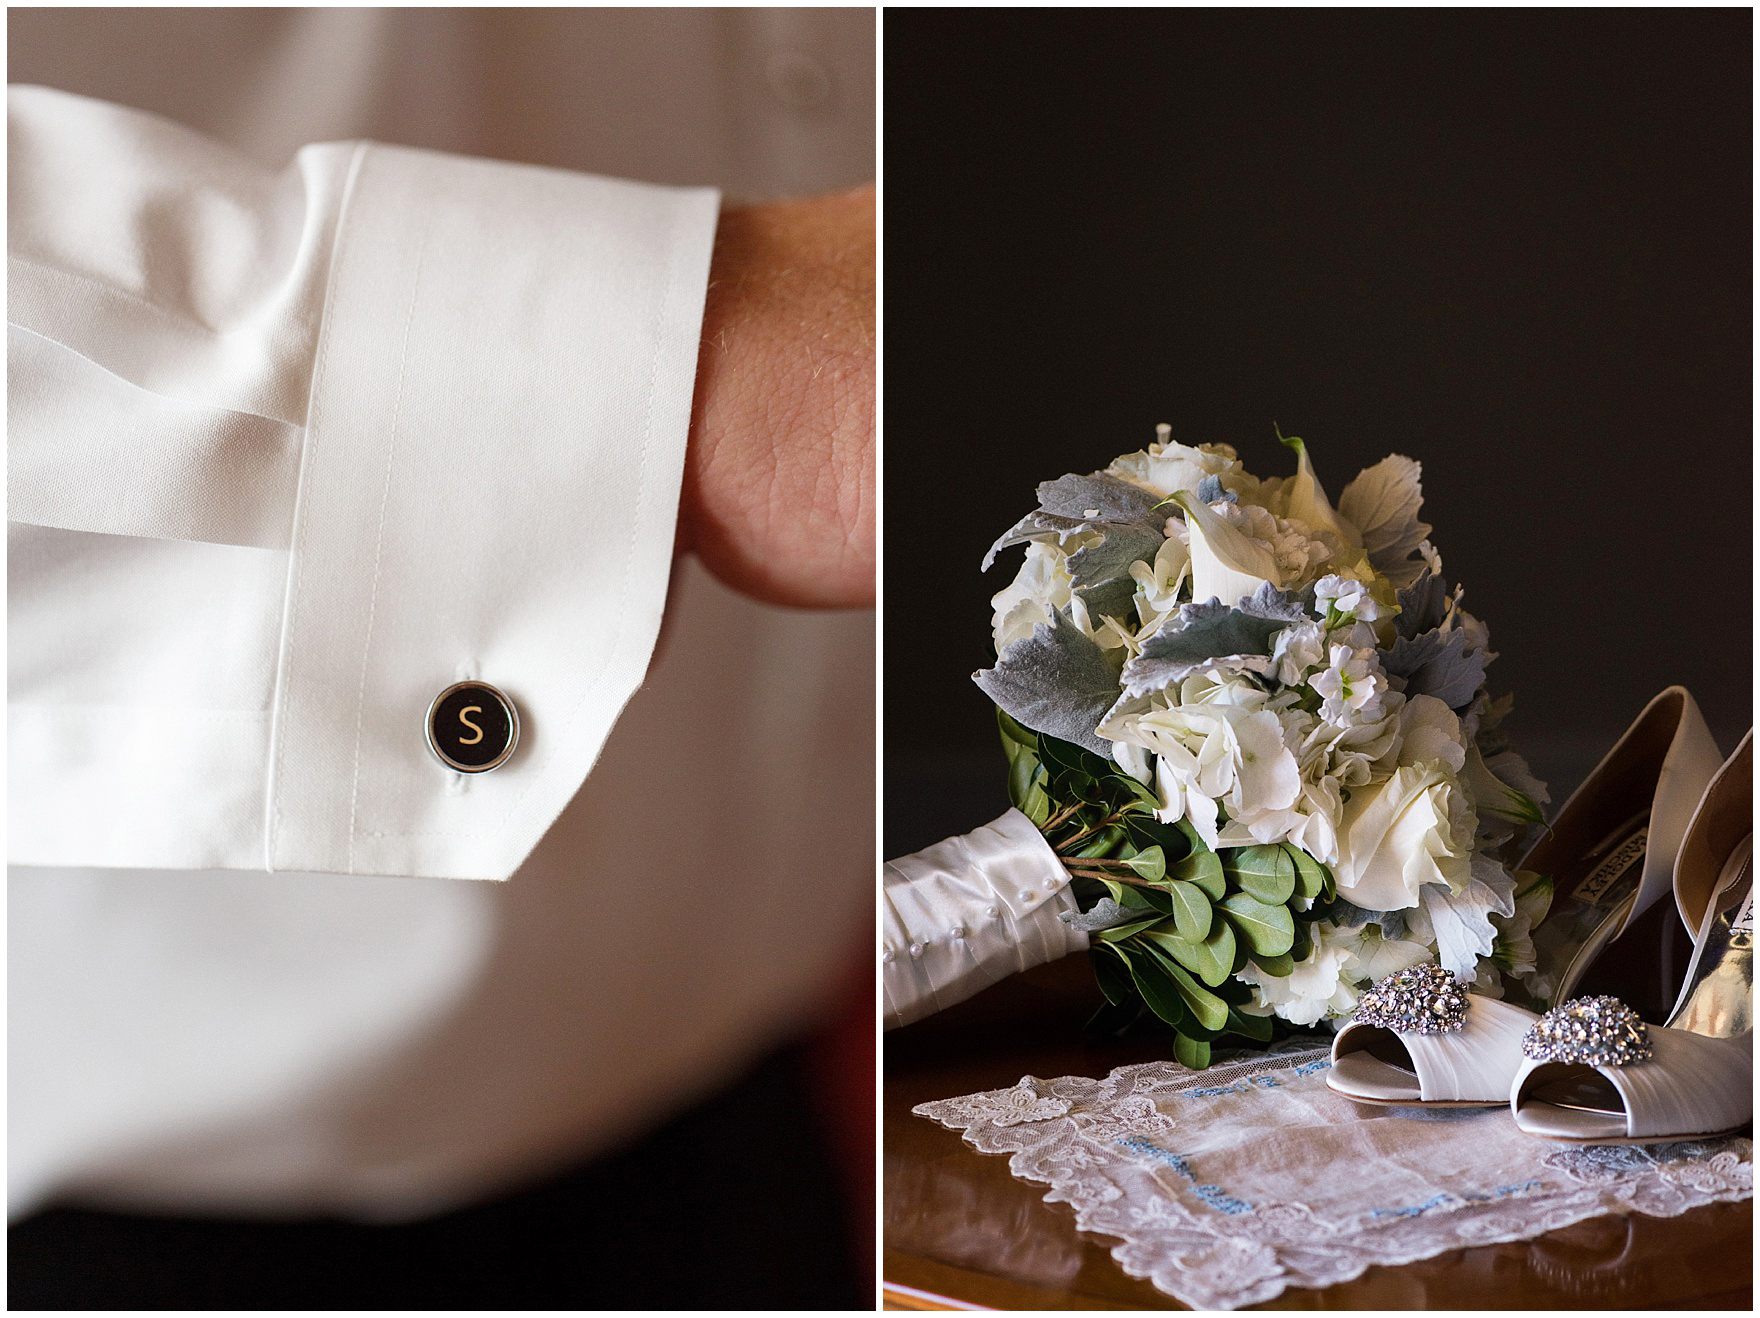 Details of the groom's monogrammed cufflinks and the bride's bouquet before a Glen Club Glenview Illinois wedding.